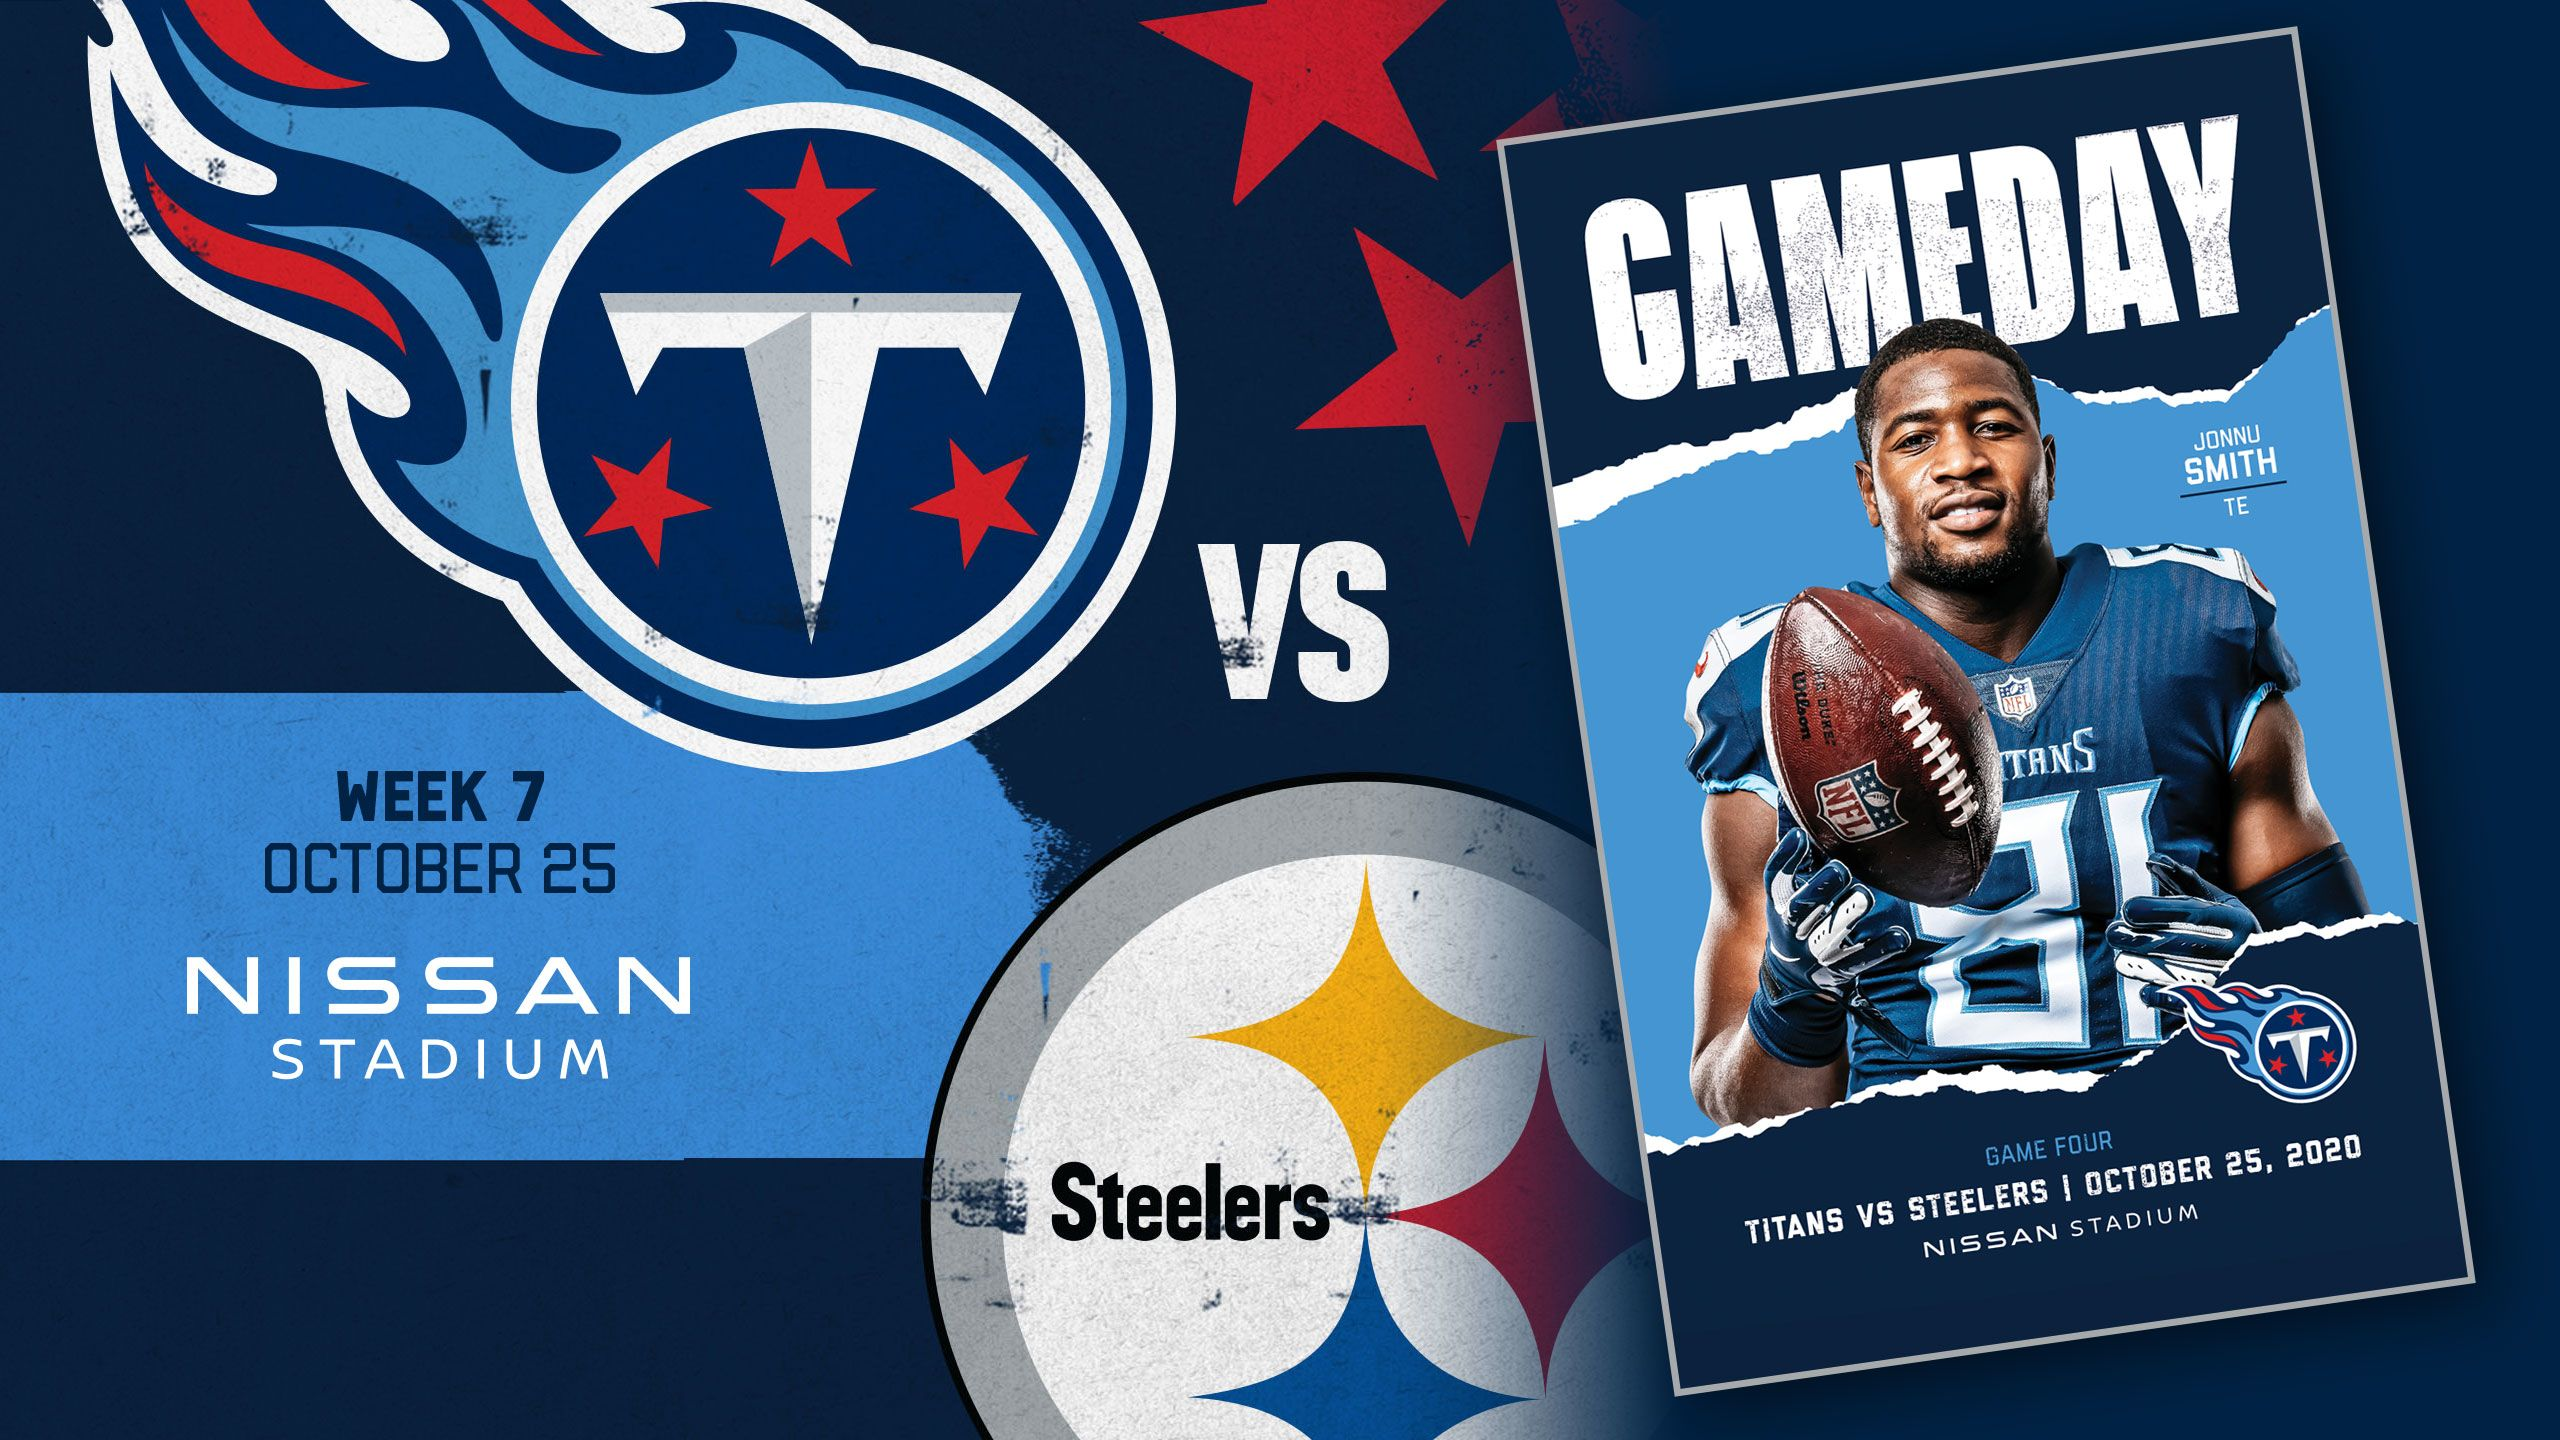 TITANS vs STEELERS